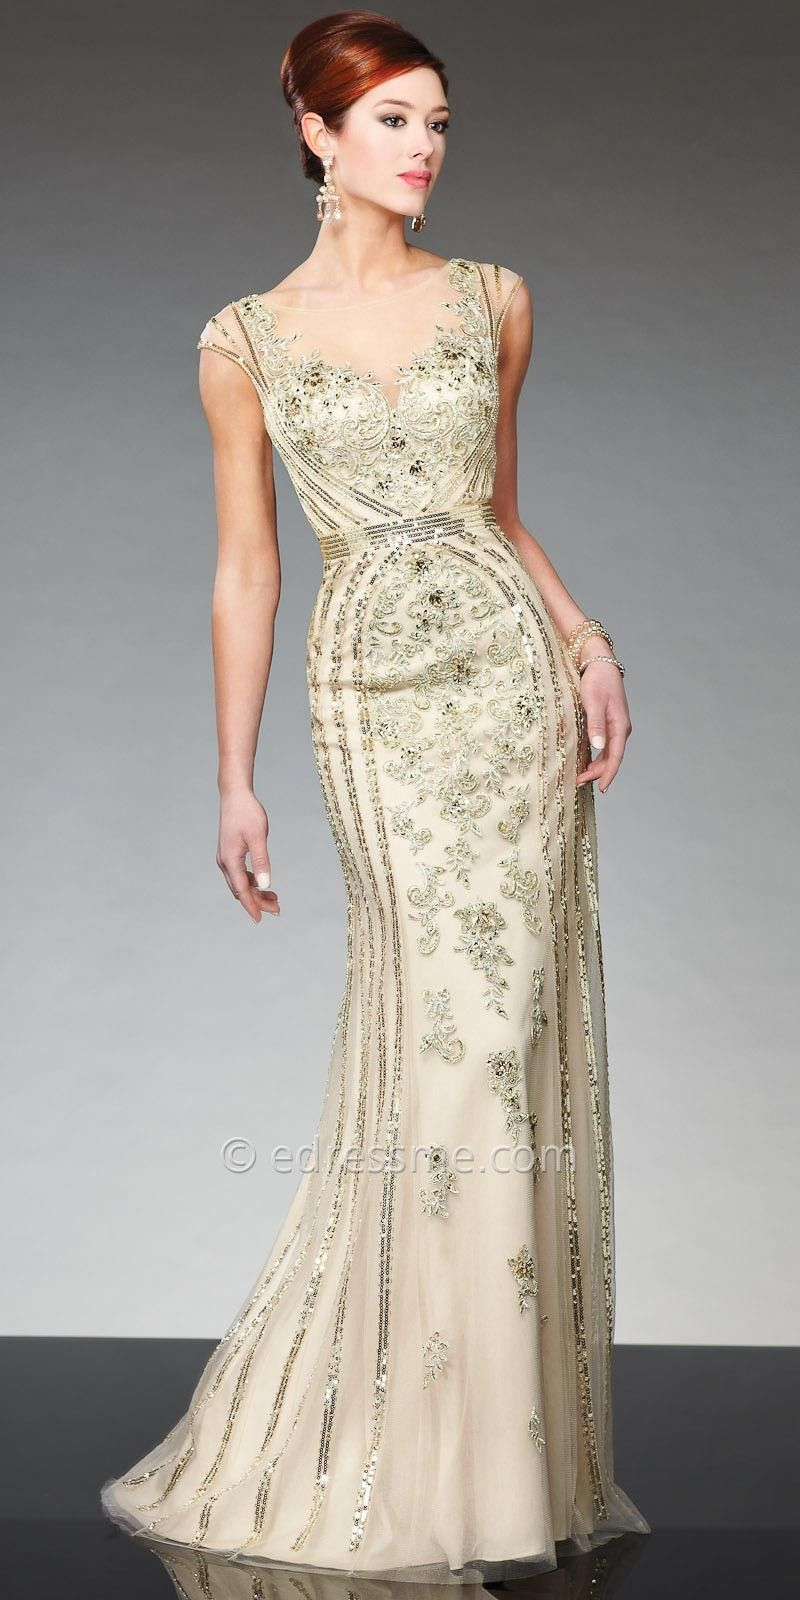 Evening wedding guest dresses  Regal Illusion Sweetheart Evening Gown by Tony Bowls Evenings